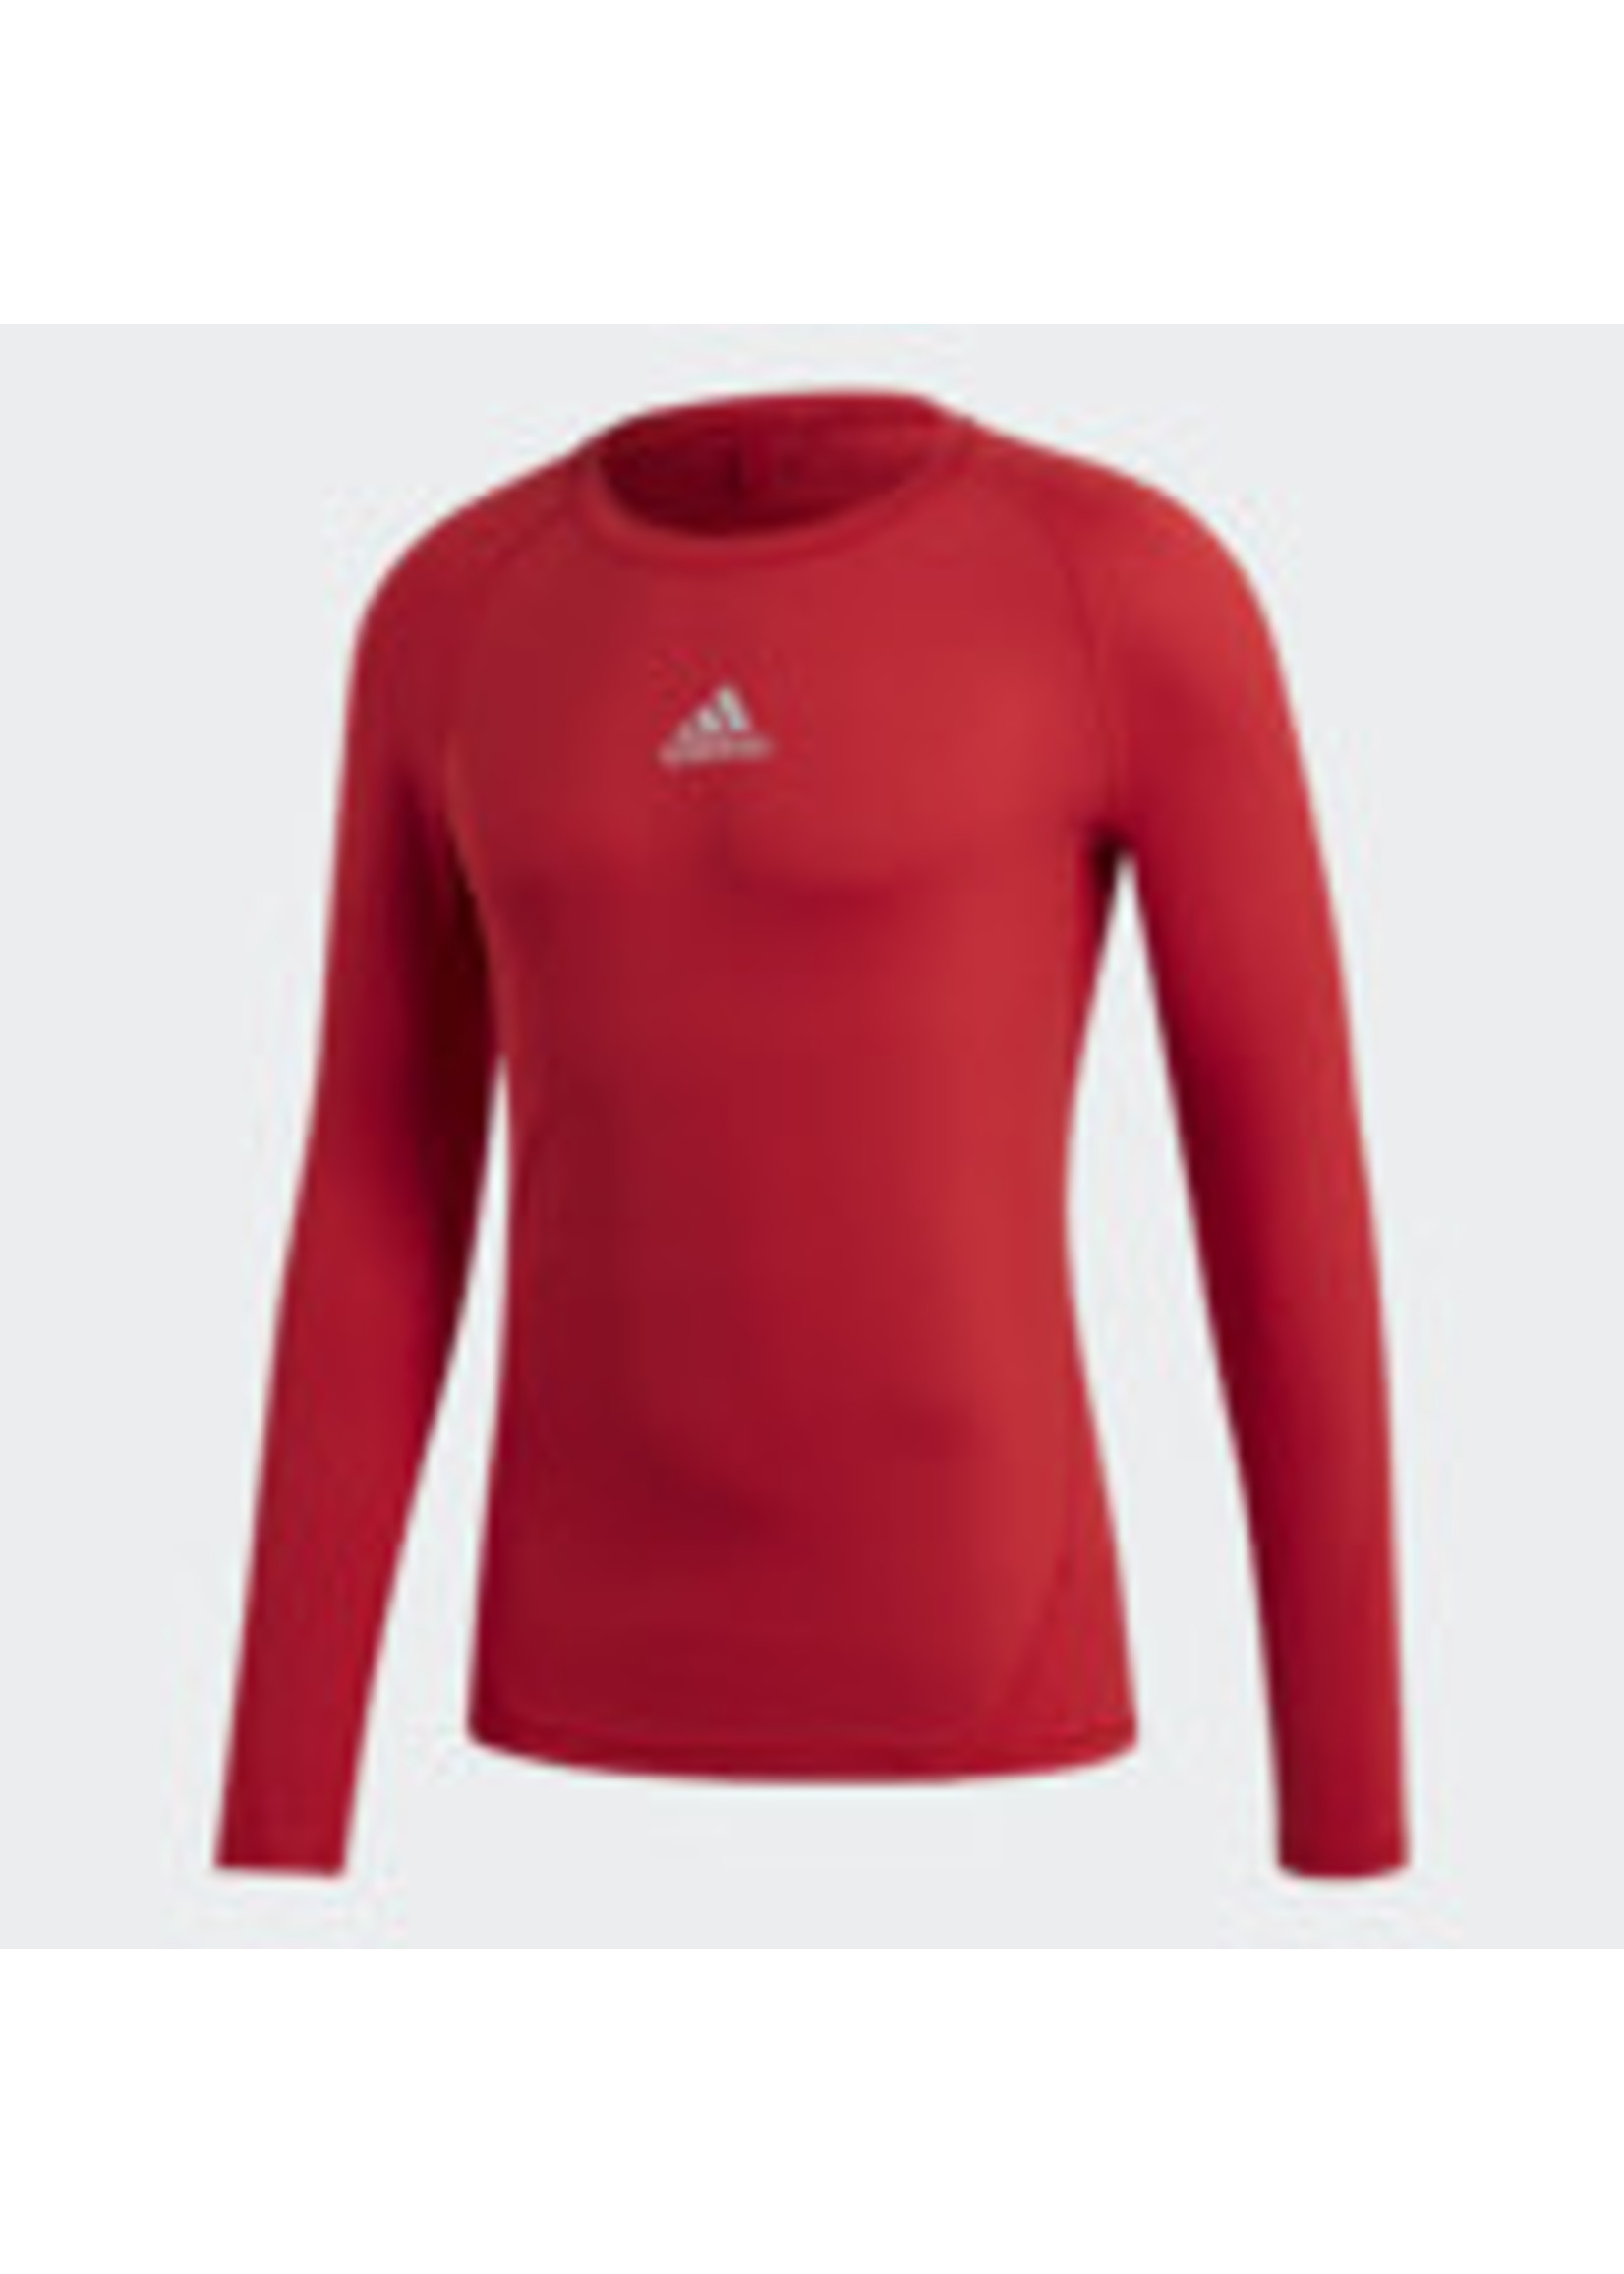 Adidas Compression Red Long Sleeve Adult